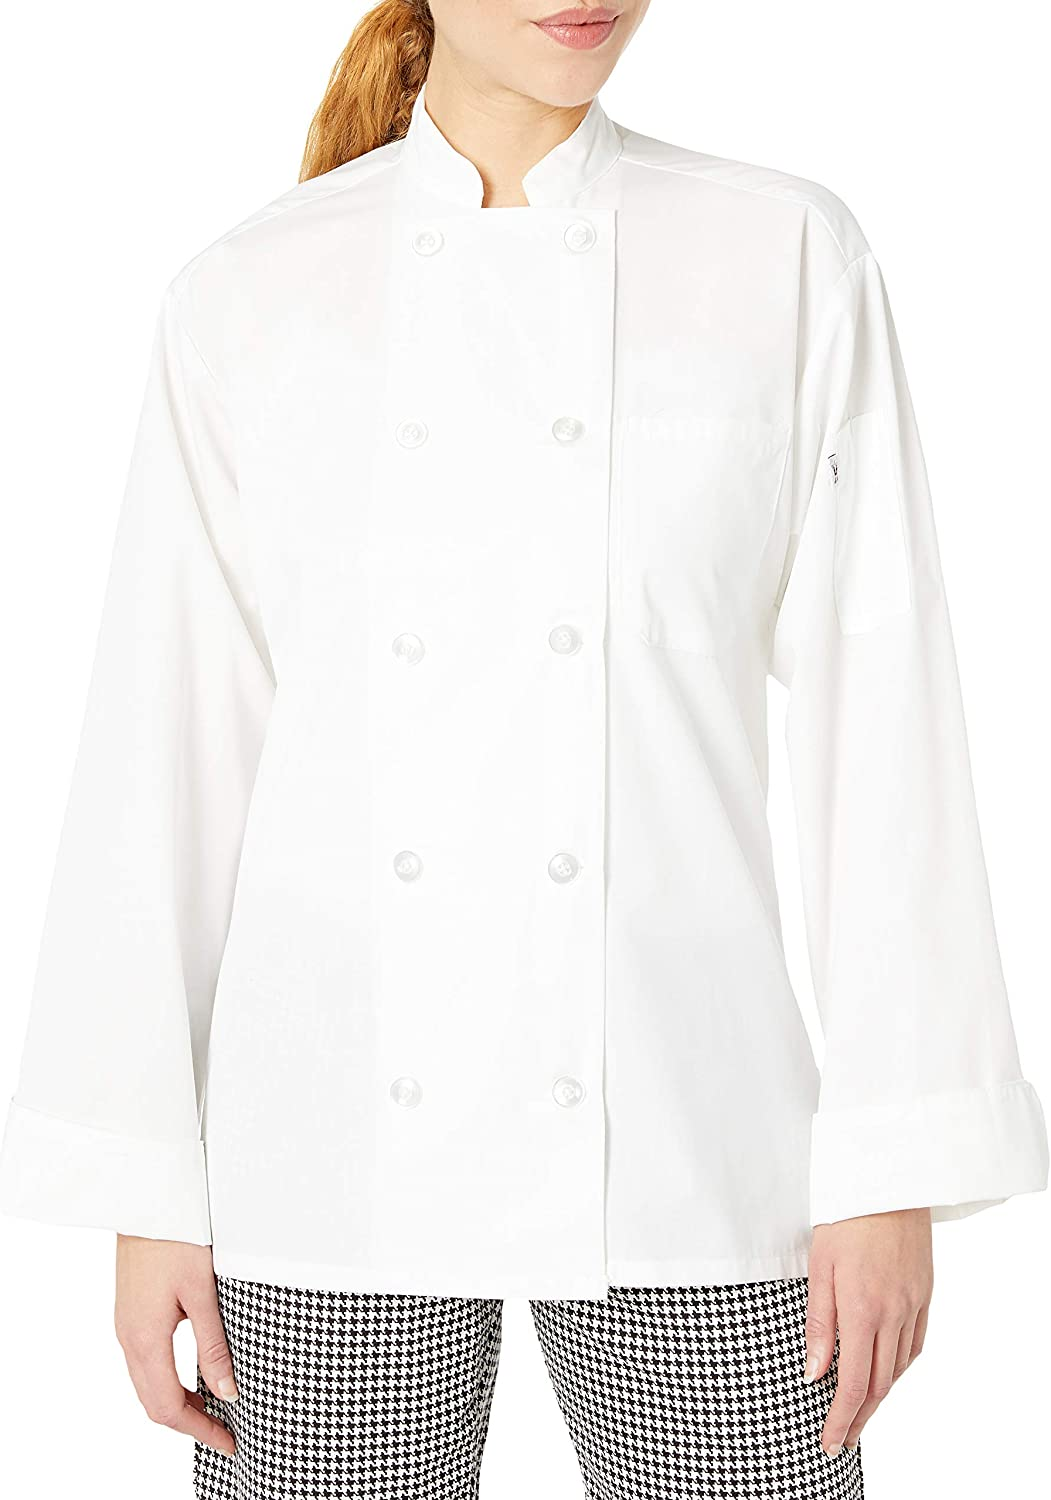 Uncommon Threads Women's Chef Coat 10 Btn 5.25oz: Clothing